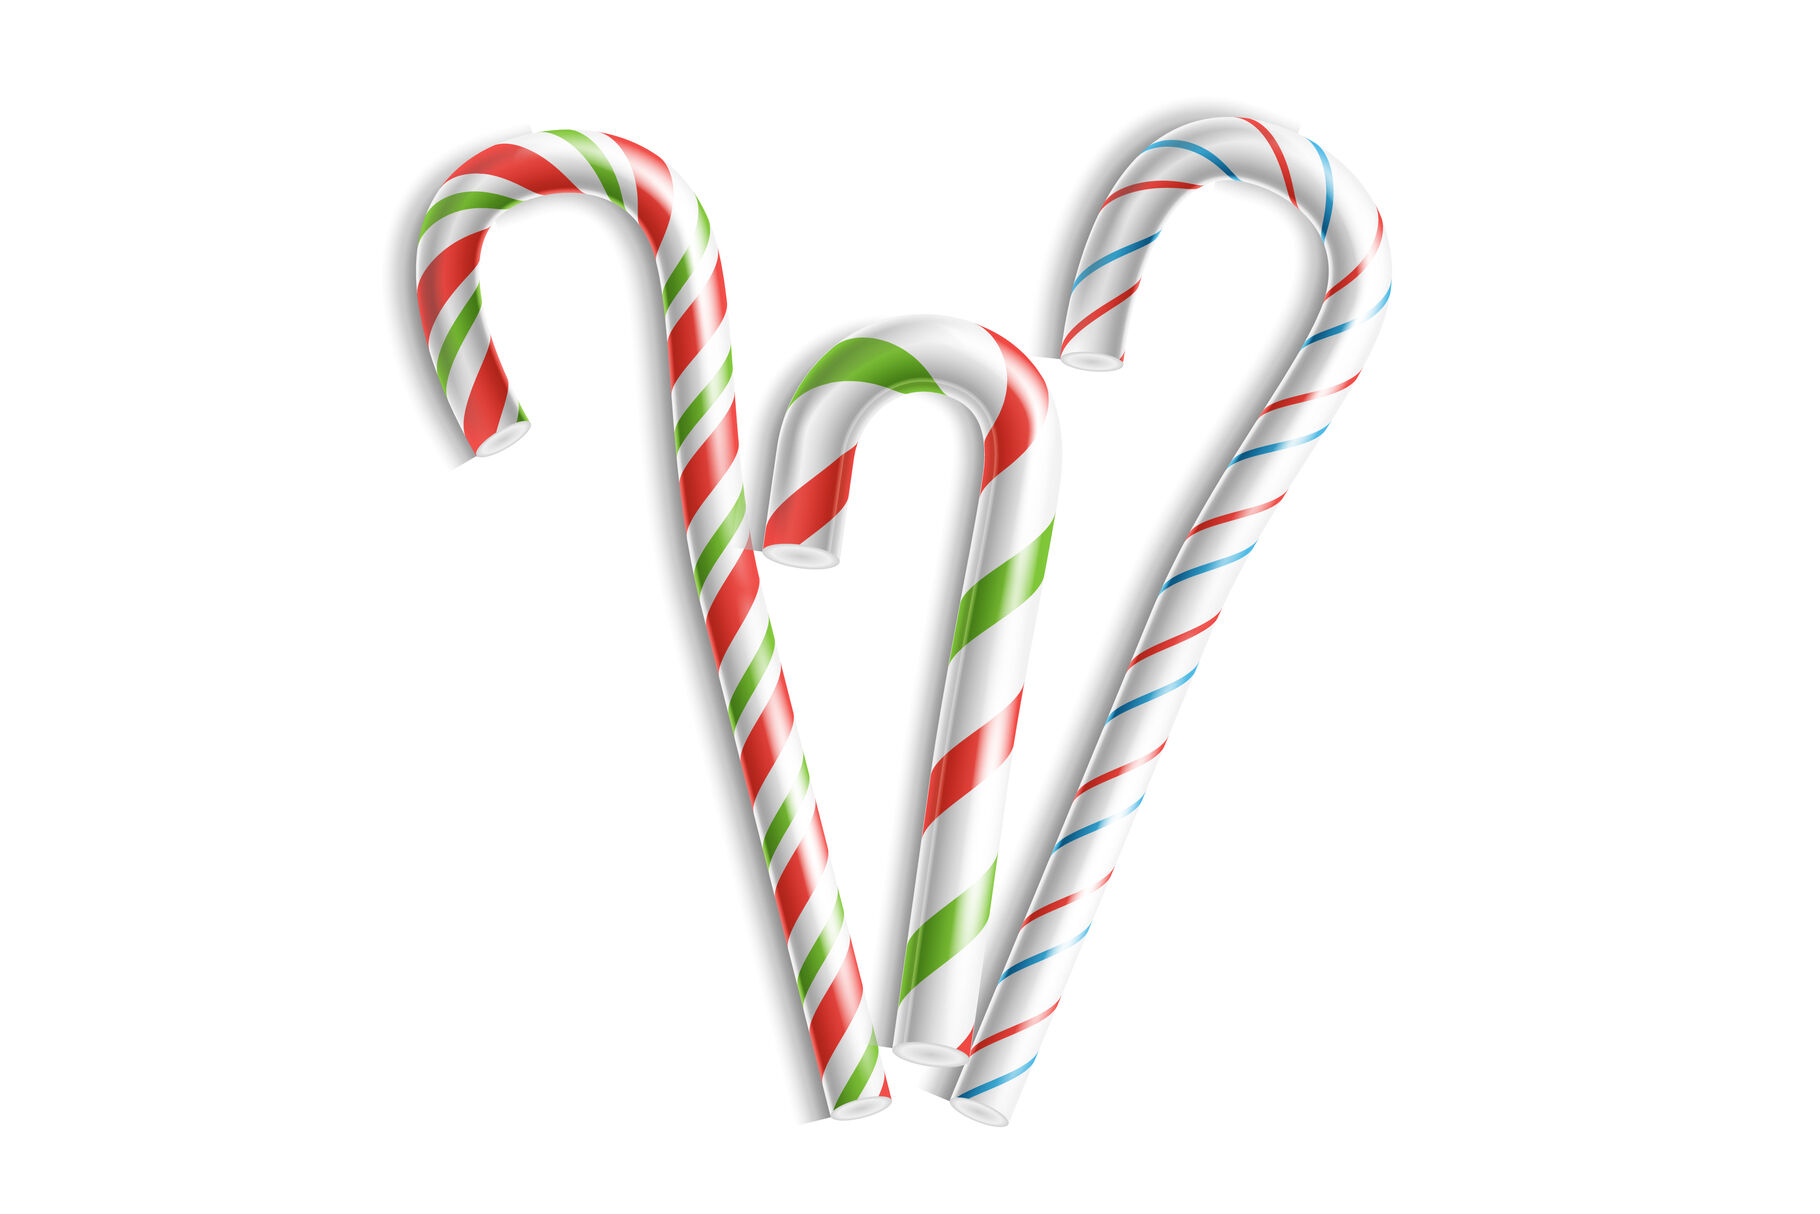 3d Xmas Candy Cane Set Vector Isolated On White For Christmas